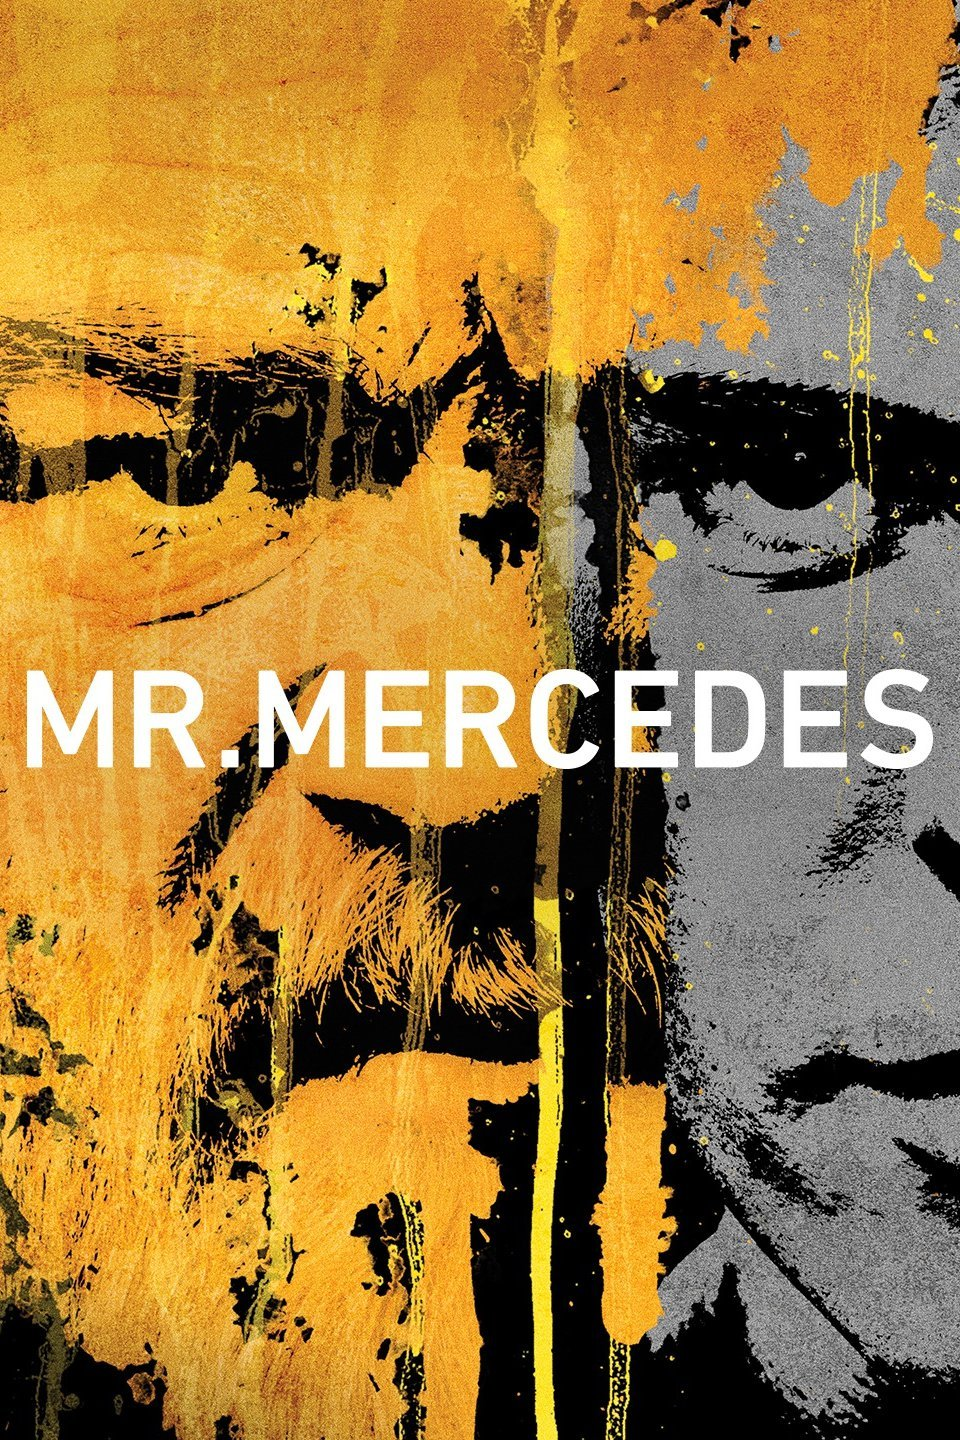 Mr. Mercedes Season 1 Episode 2 HDTV Micromkv